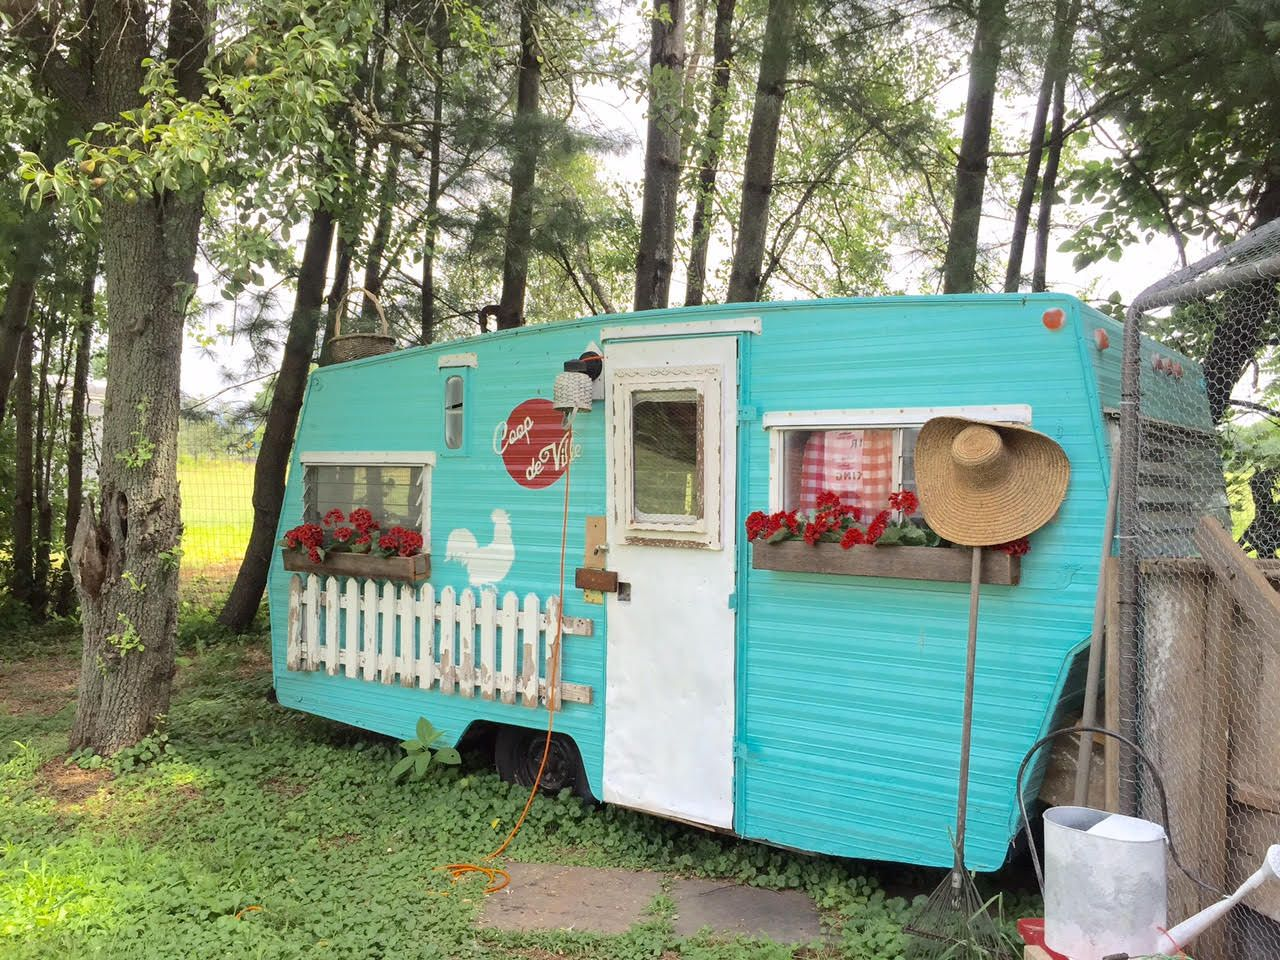 Best Painted Caravan Images On Pinterest Traveling DIY And - Old shabby trailer gets one hell makeover